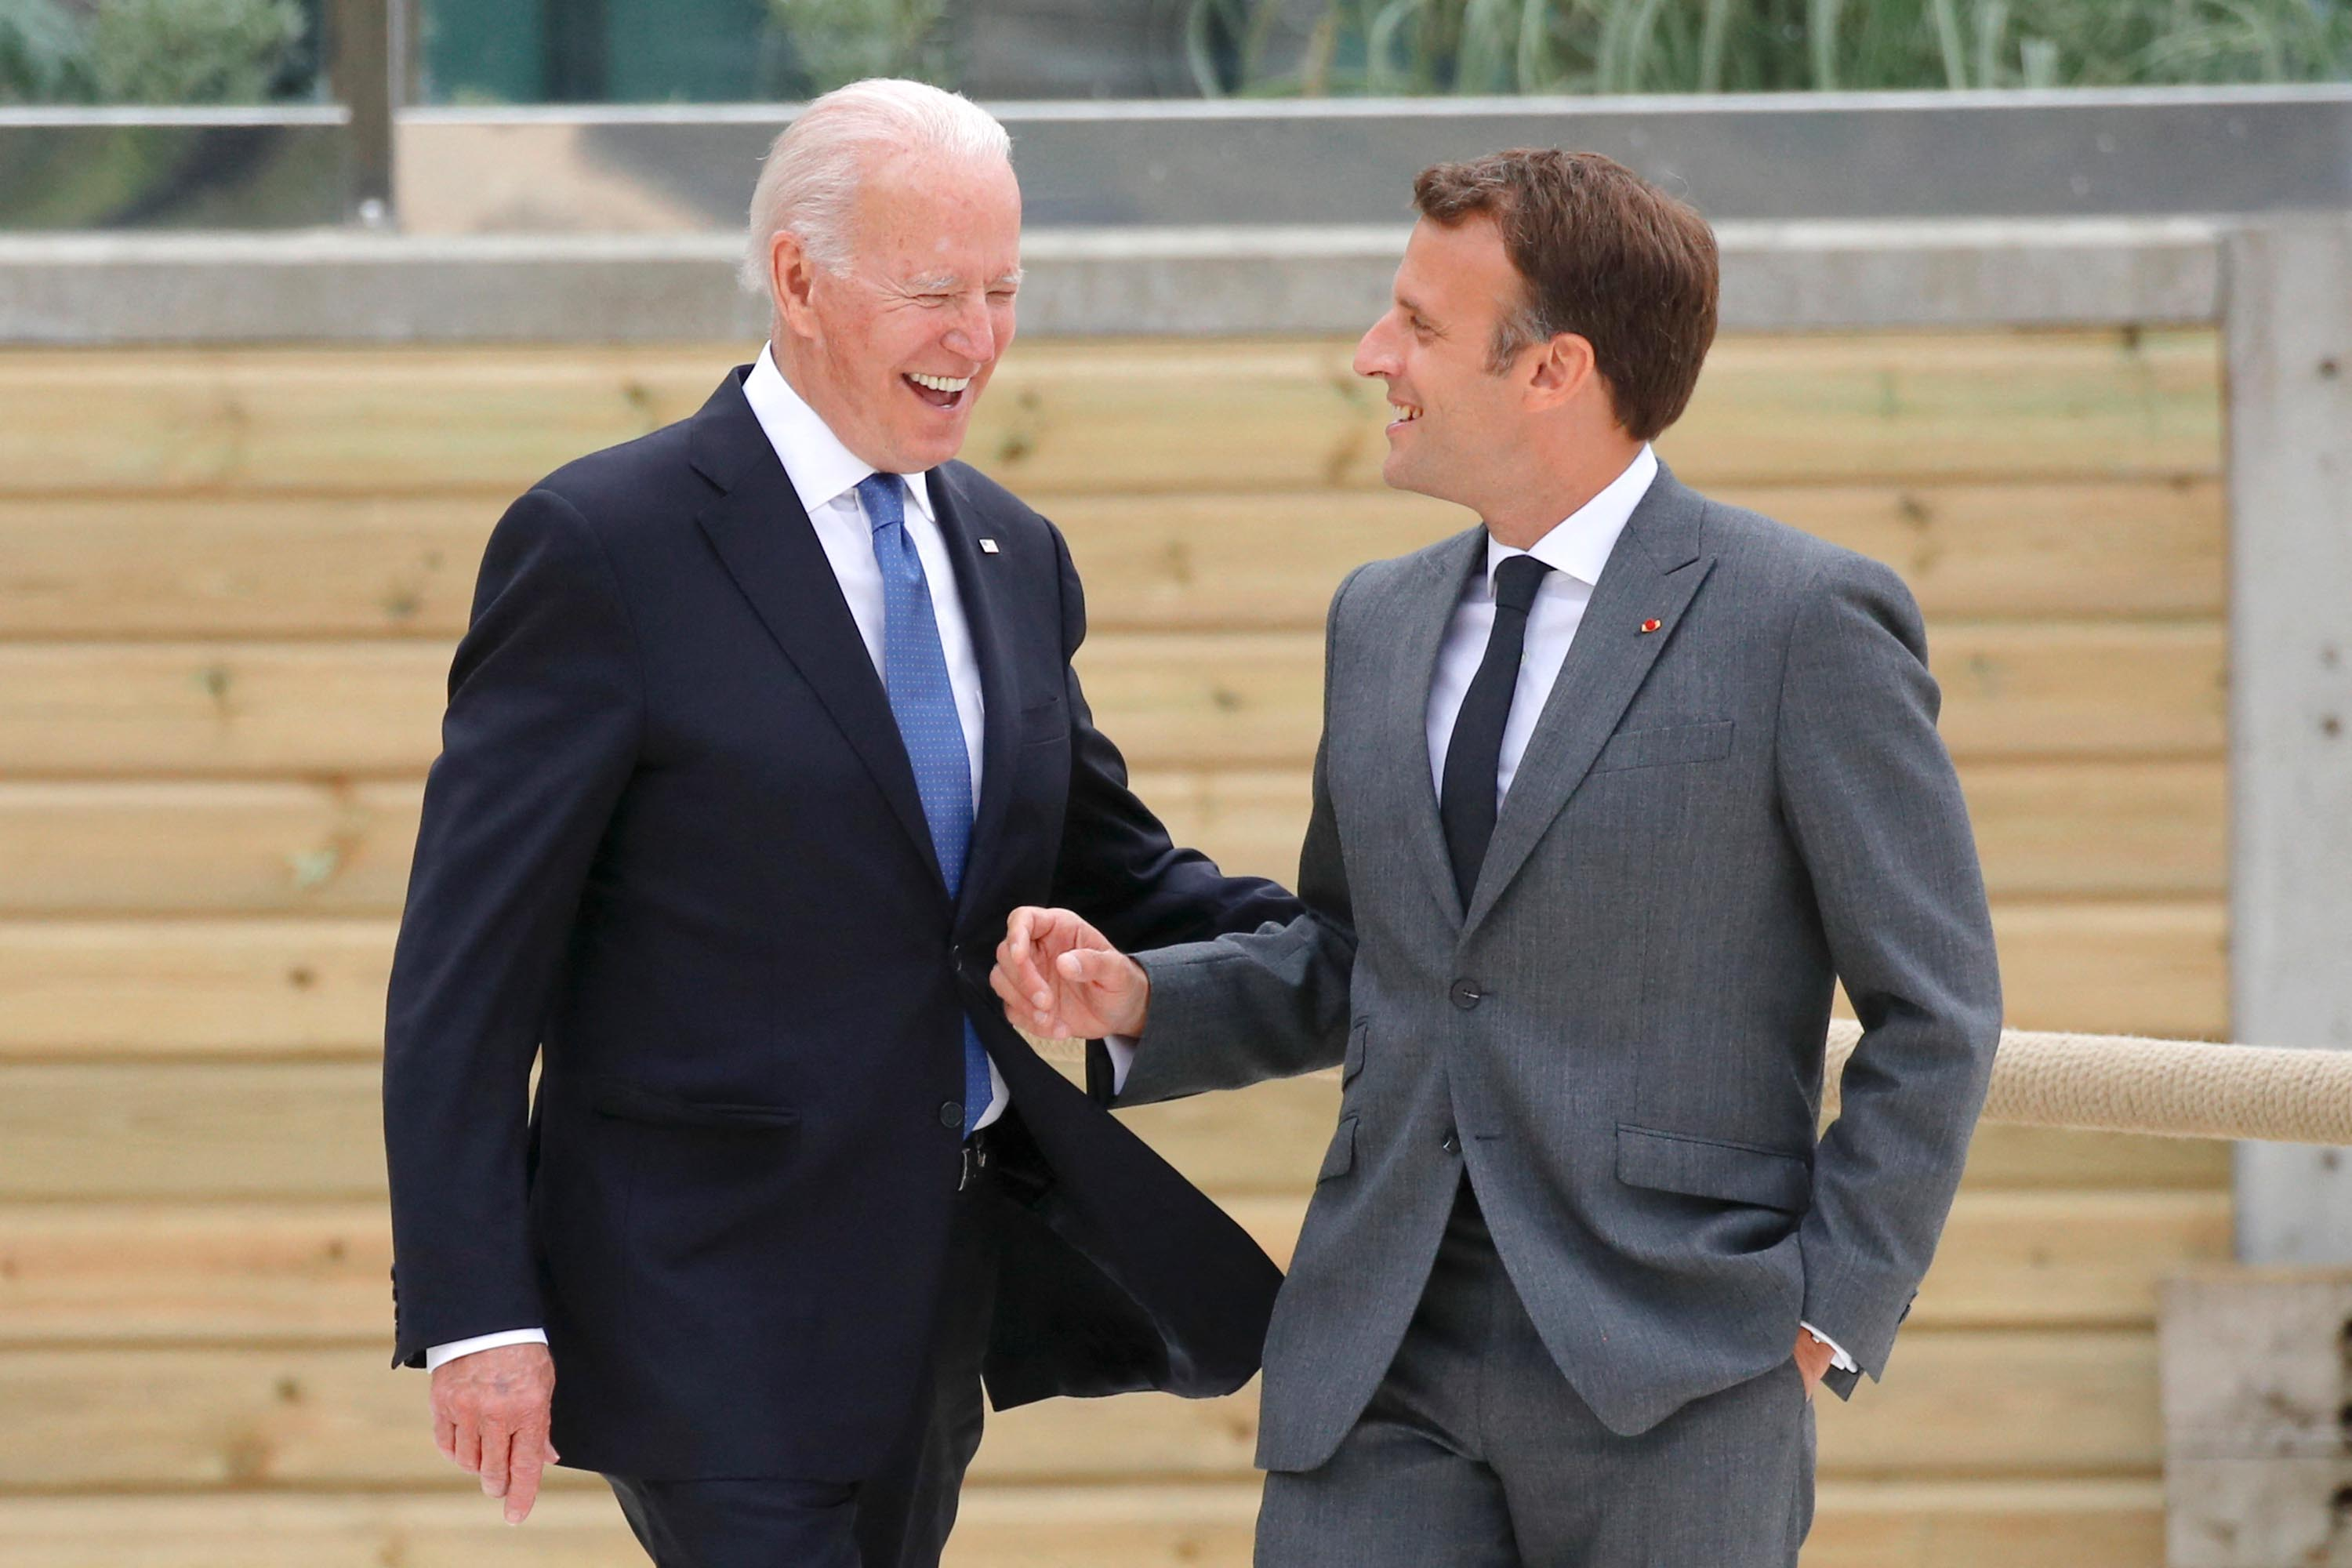 Macron says Biden is 'part of the club' at the G7 in leaders' first formal meeting